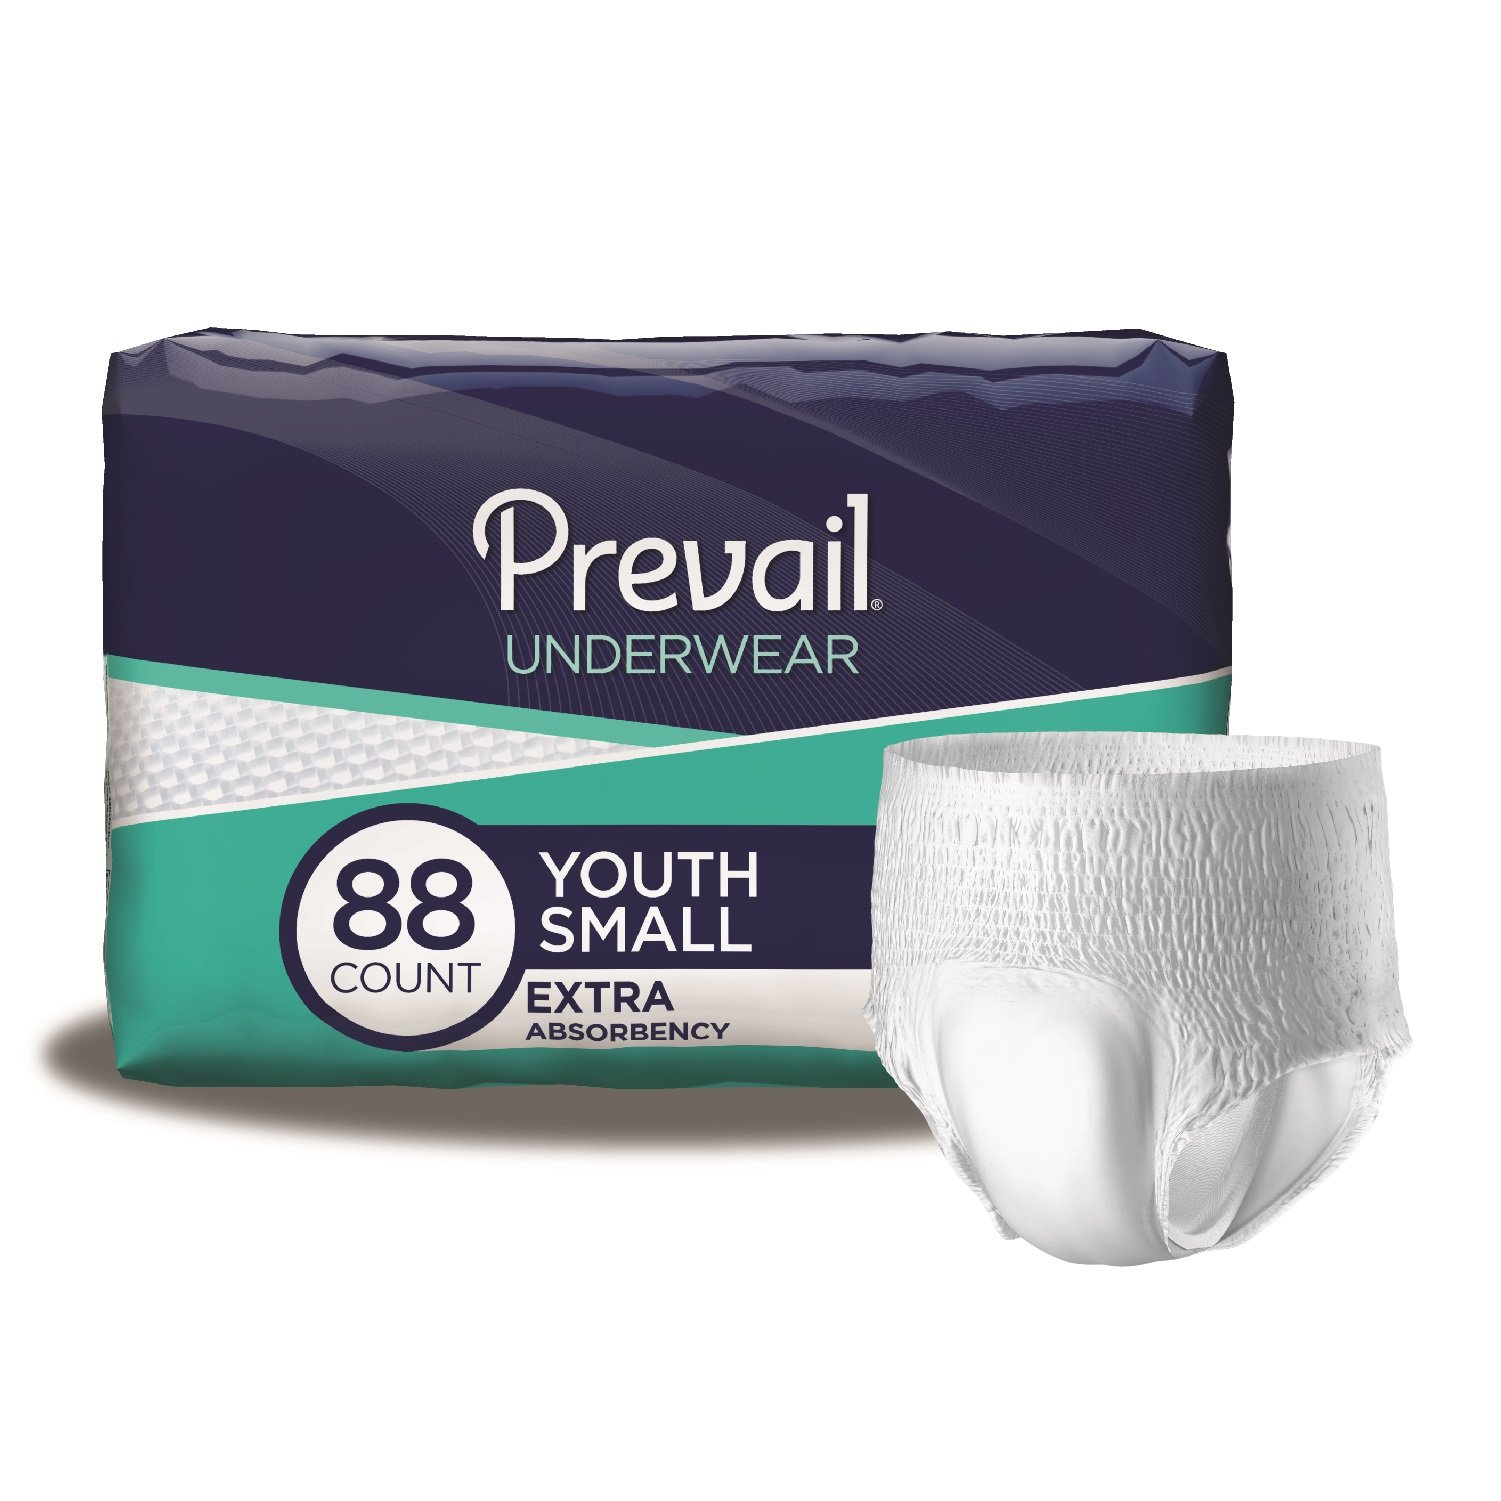 Prevail Extra Absorbency Incontinence Underwear, Youth/Small Adult, 22-Count (Pack